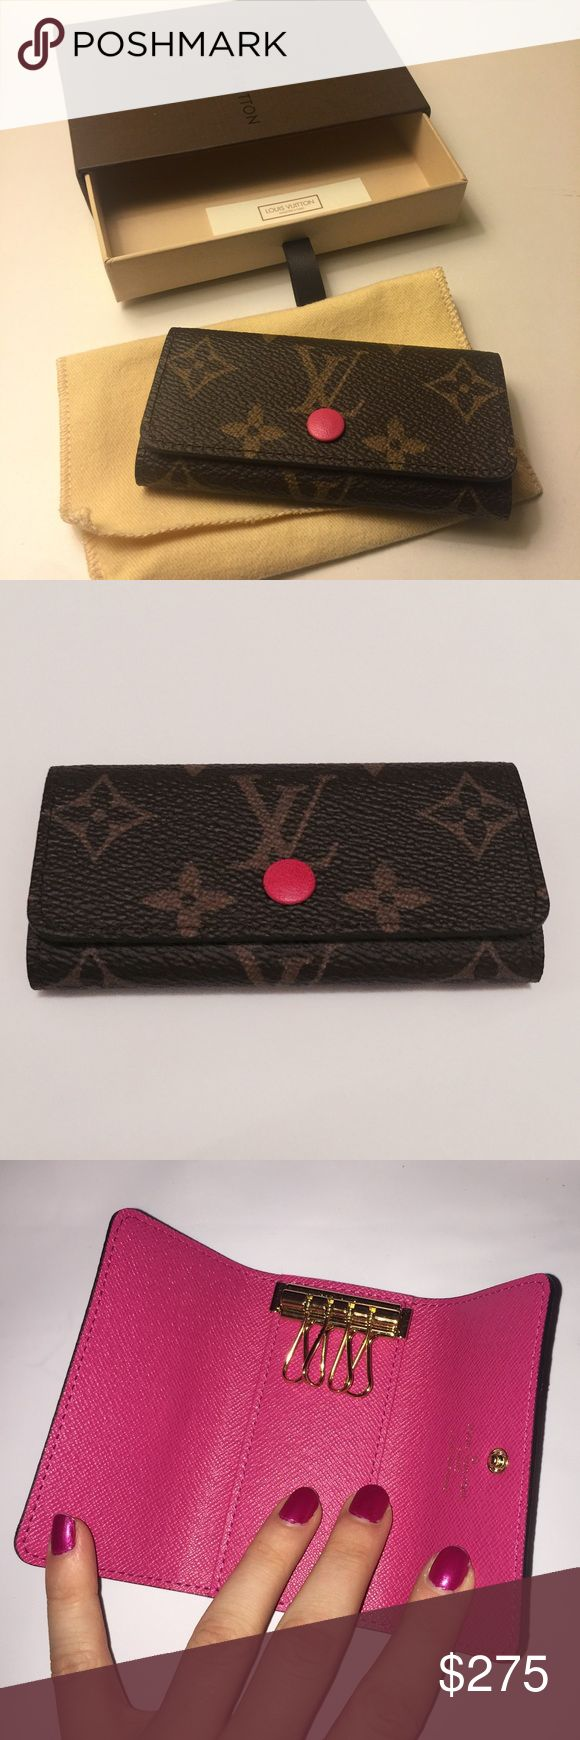 Louis Vuitton hot pink 4-key holder NWT sold out 4-key holder in hot pink from Louis Vuitton.  Never been used, no signs of wear. Louis Vuitton Accessories Key & Card Holders